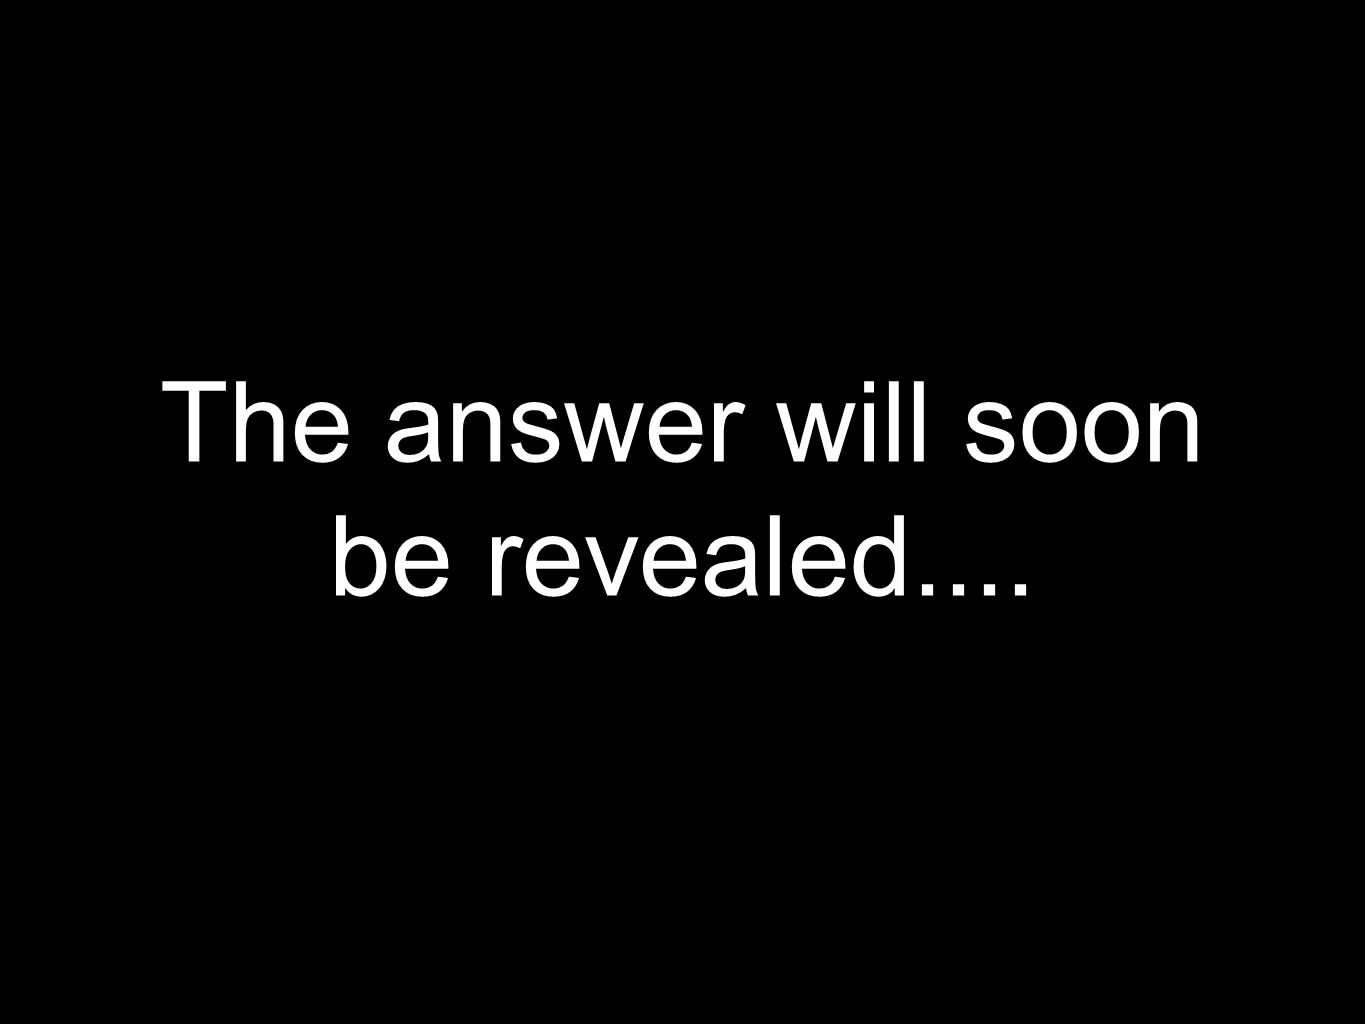 The answer will soon be revealed....